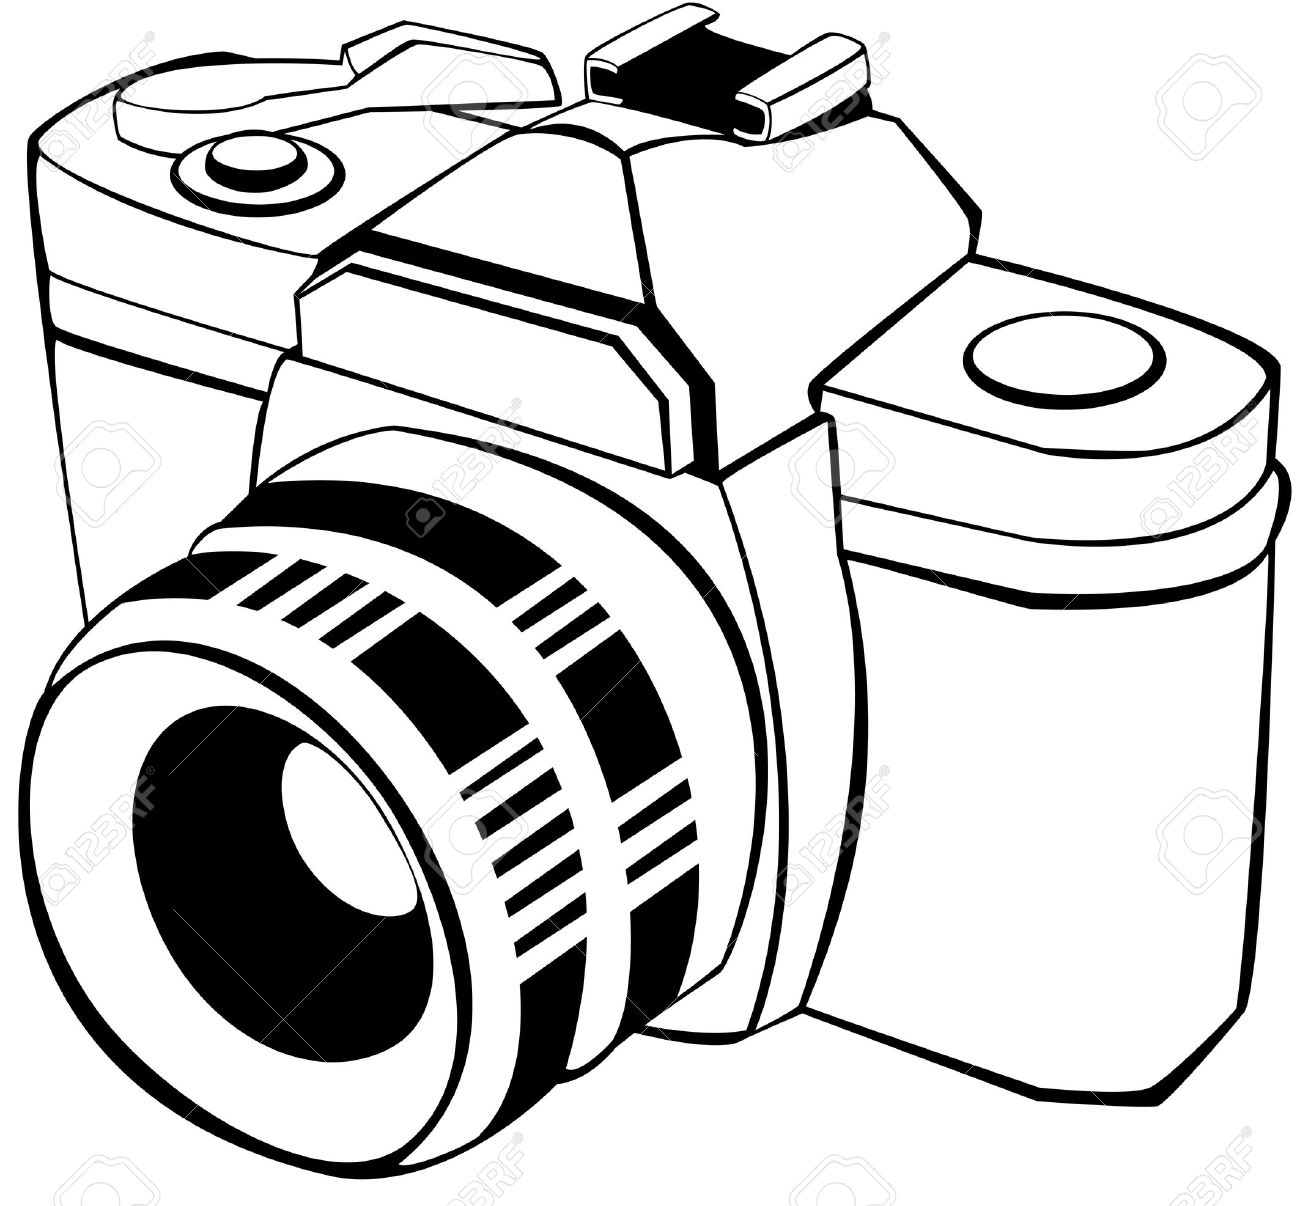 Vector Draw Of An Analogic Reflex Royalty Free Cliparts Vectors